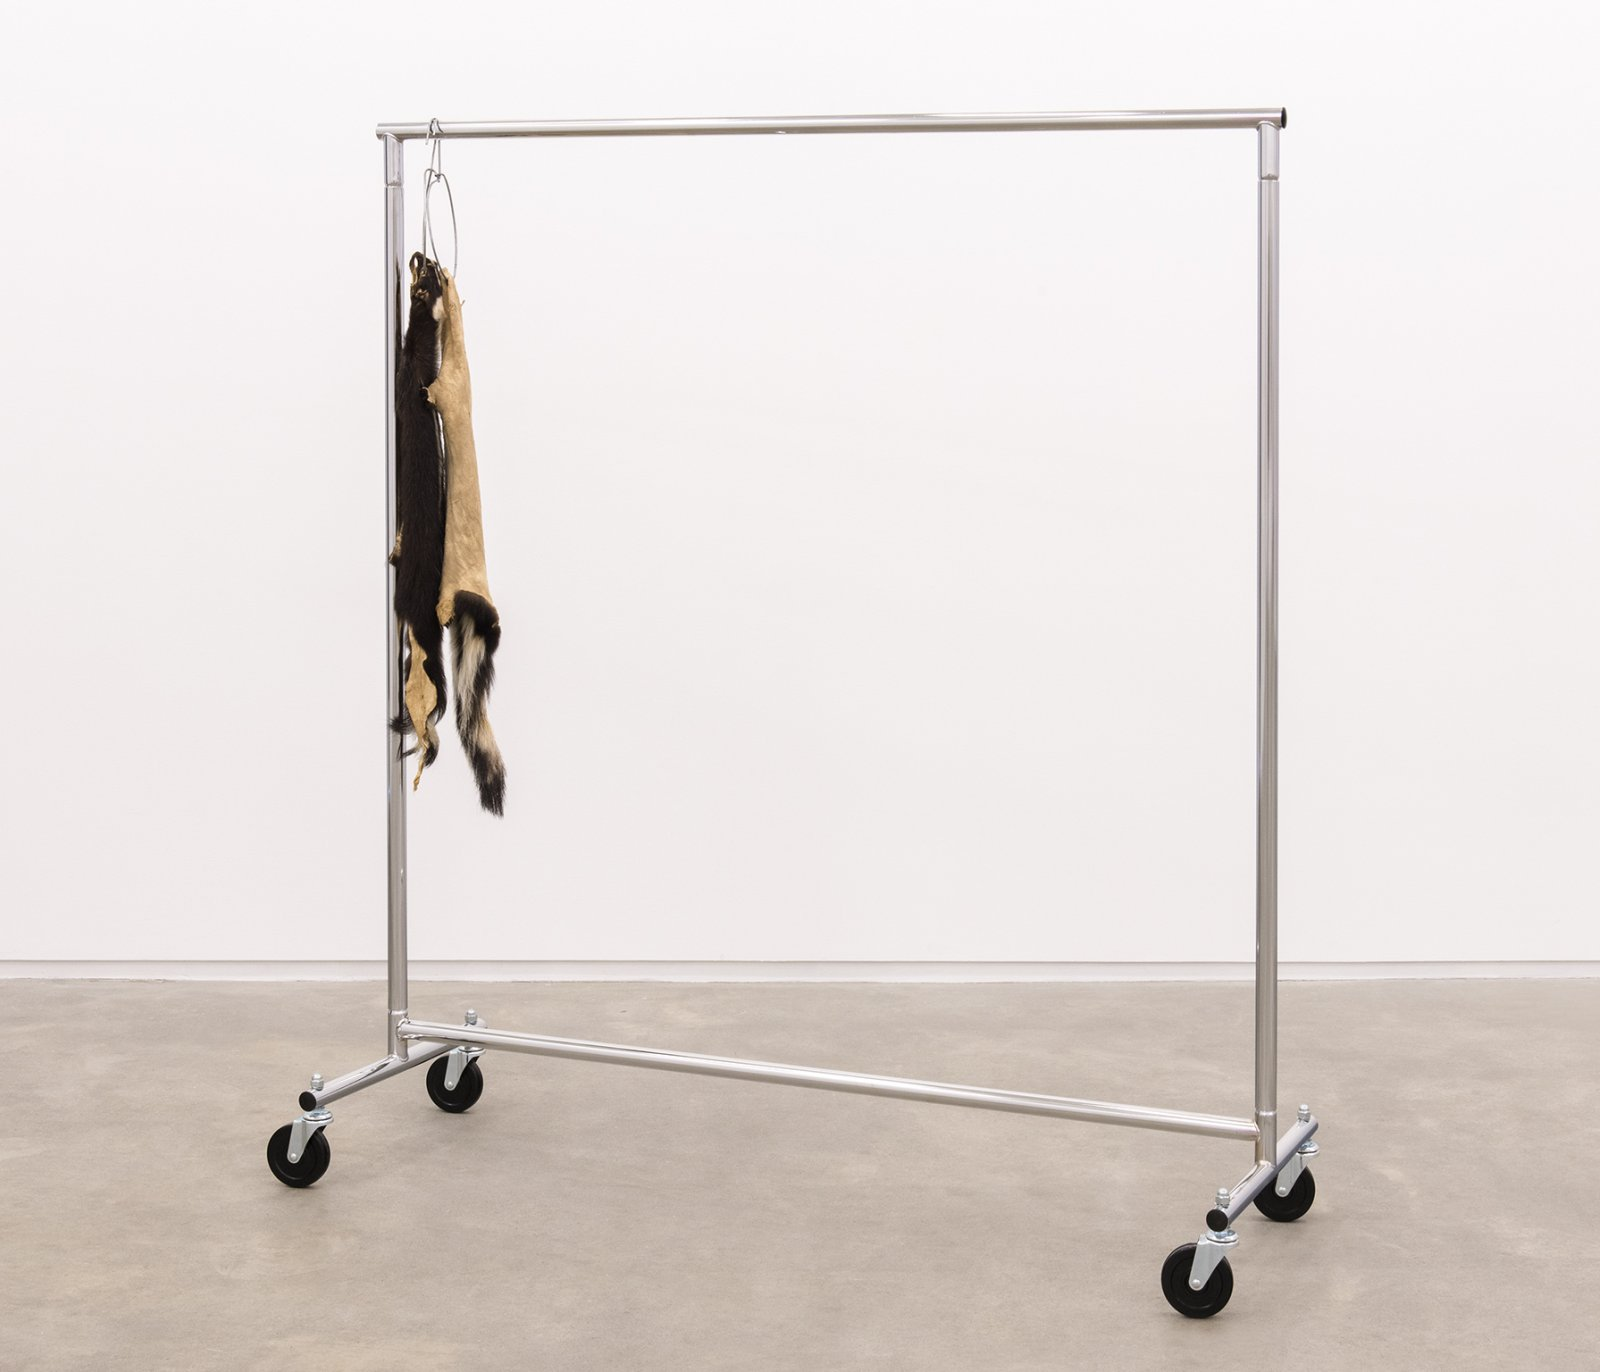 Duane Linklater, The marks left behind, 2014, skunk furs, garment rack, hangers, 66 x 60 x 20 in. (168 x 151 x 52 cm) by Duane Linklater